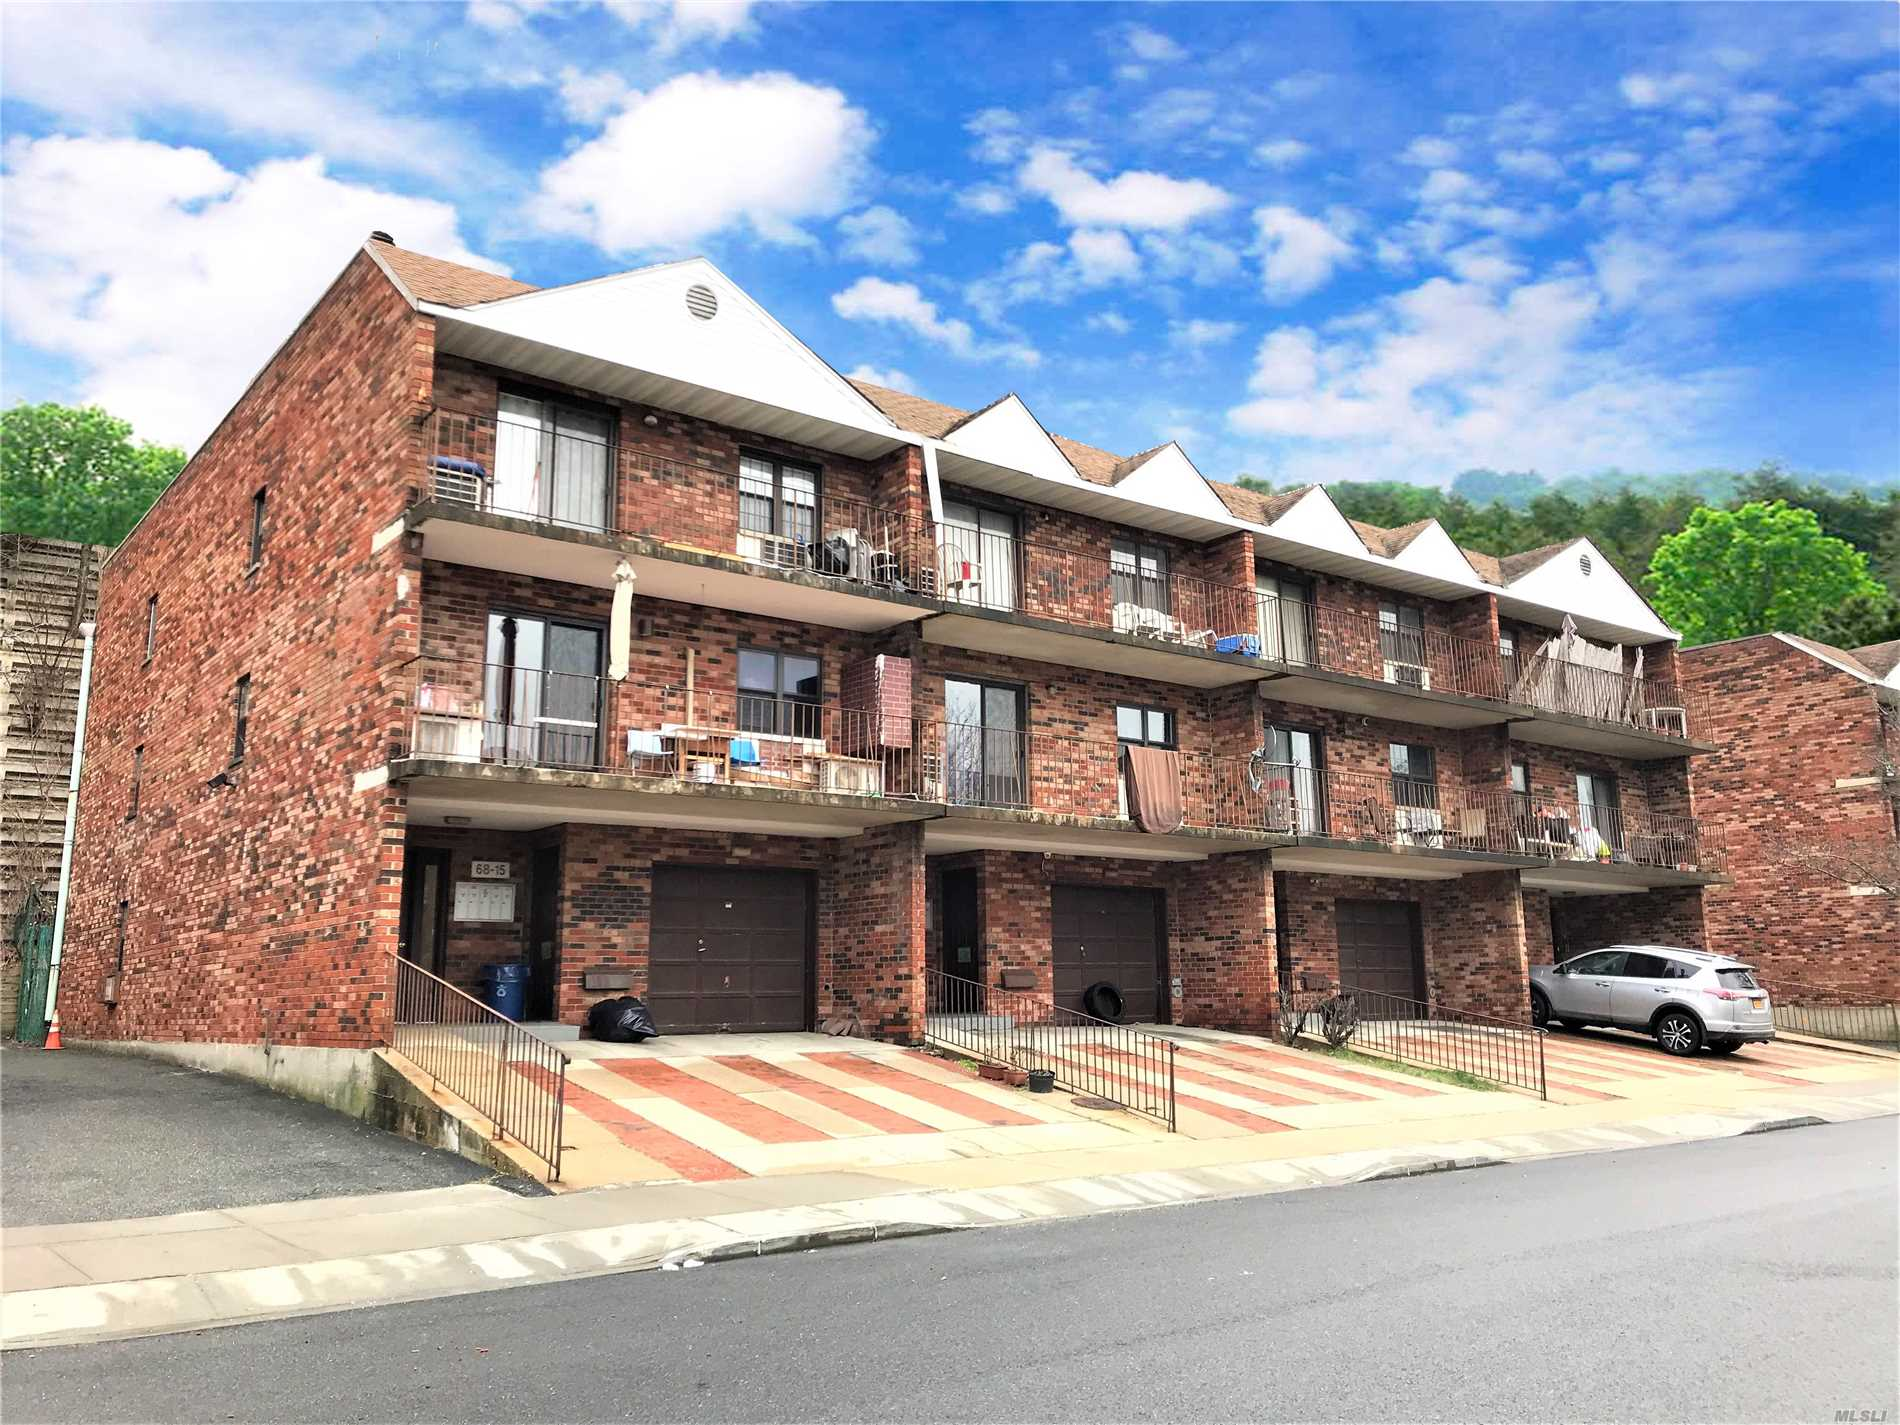 68-19 242nd St Douglaston, NY 11362